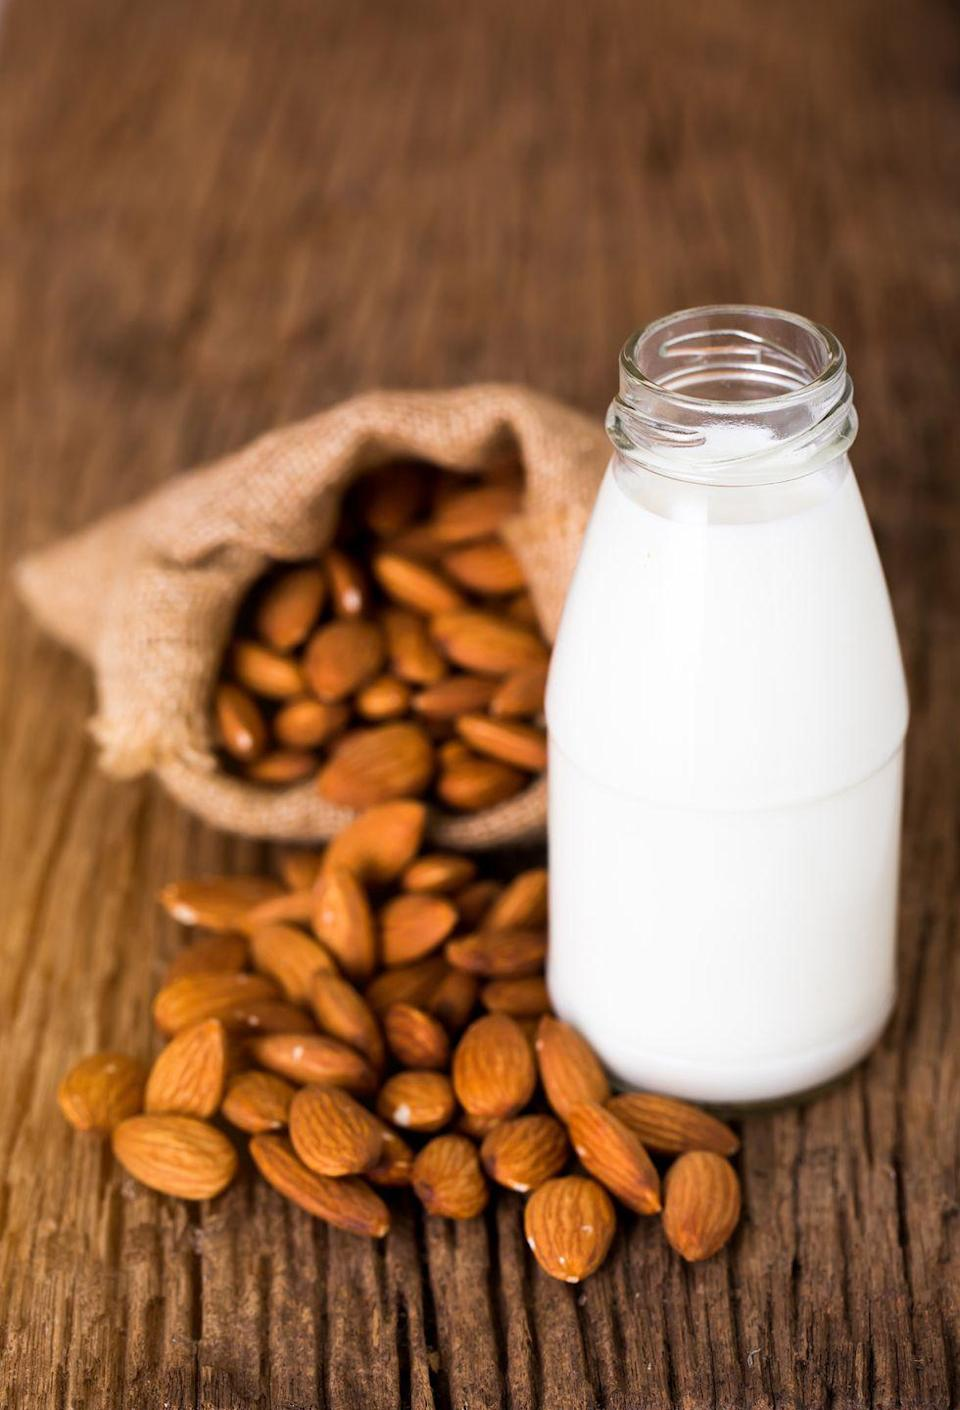 """<p>Total caveat: If you're lactose intolerant or vegan, nut milks can be a good non-dairy alternative. But the type of nut milk you choose matters. Many varieties are packed with sugar, making them anything but healthy, Upton says. If you love nut milks, make sure you opt for ones that specifically say """"unsweetened"""" on the label.</p>"""